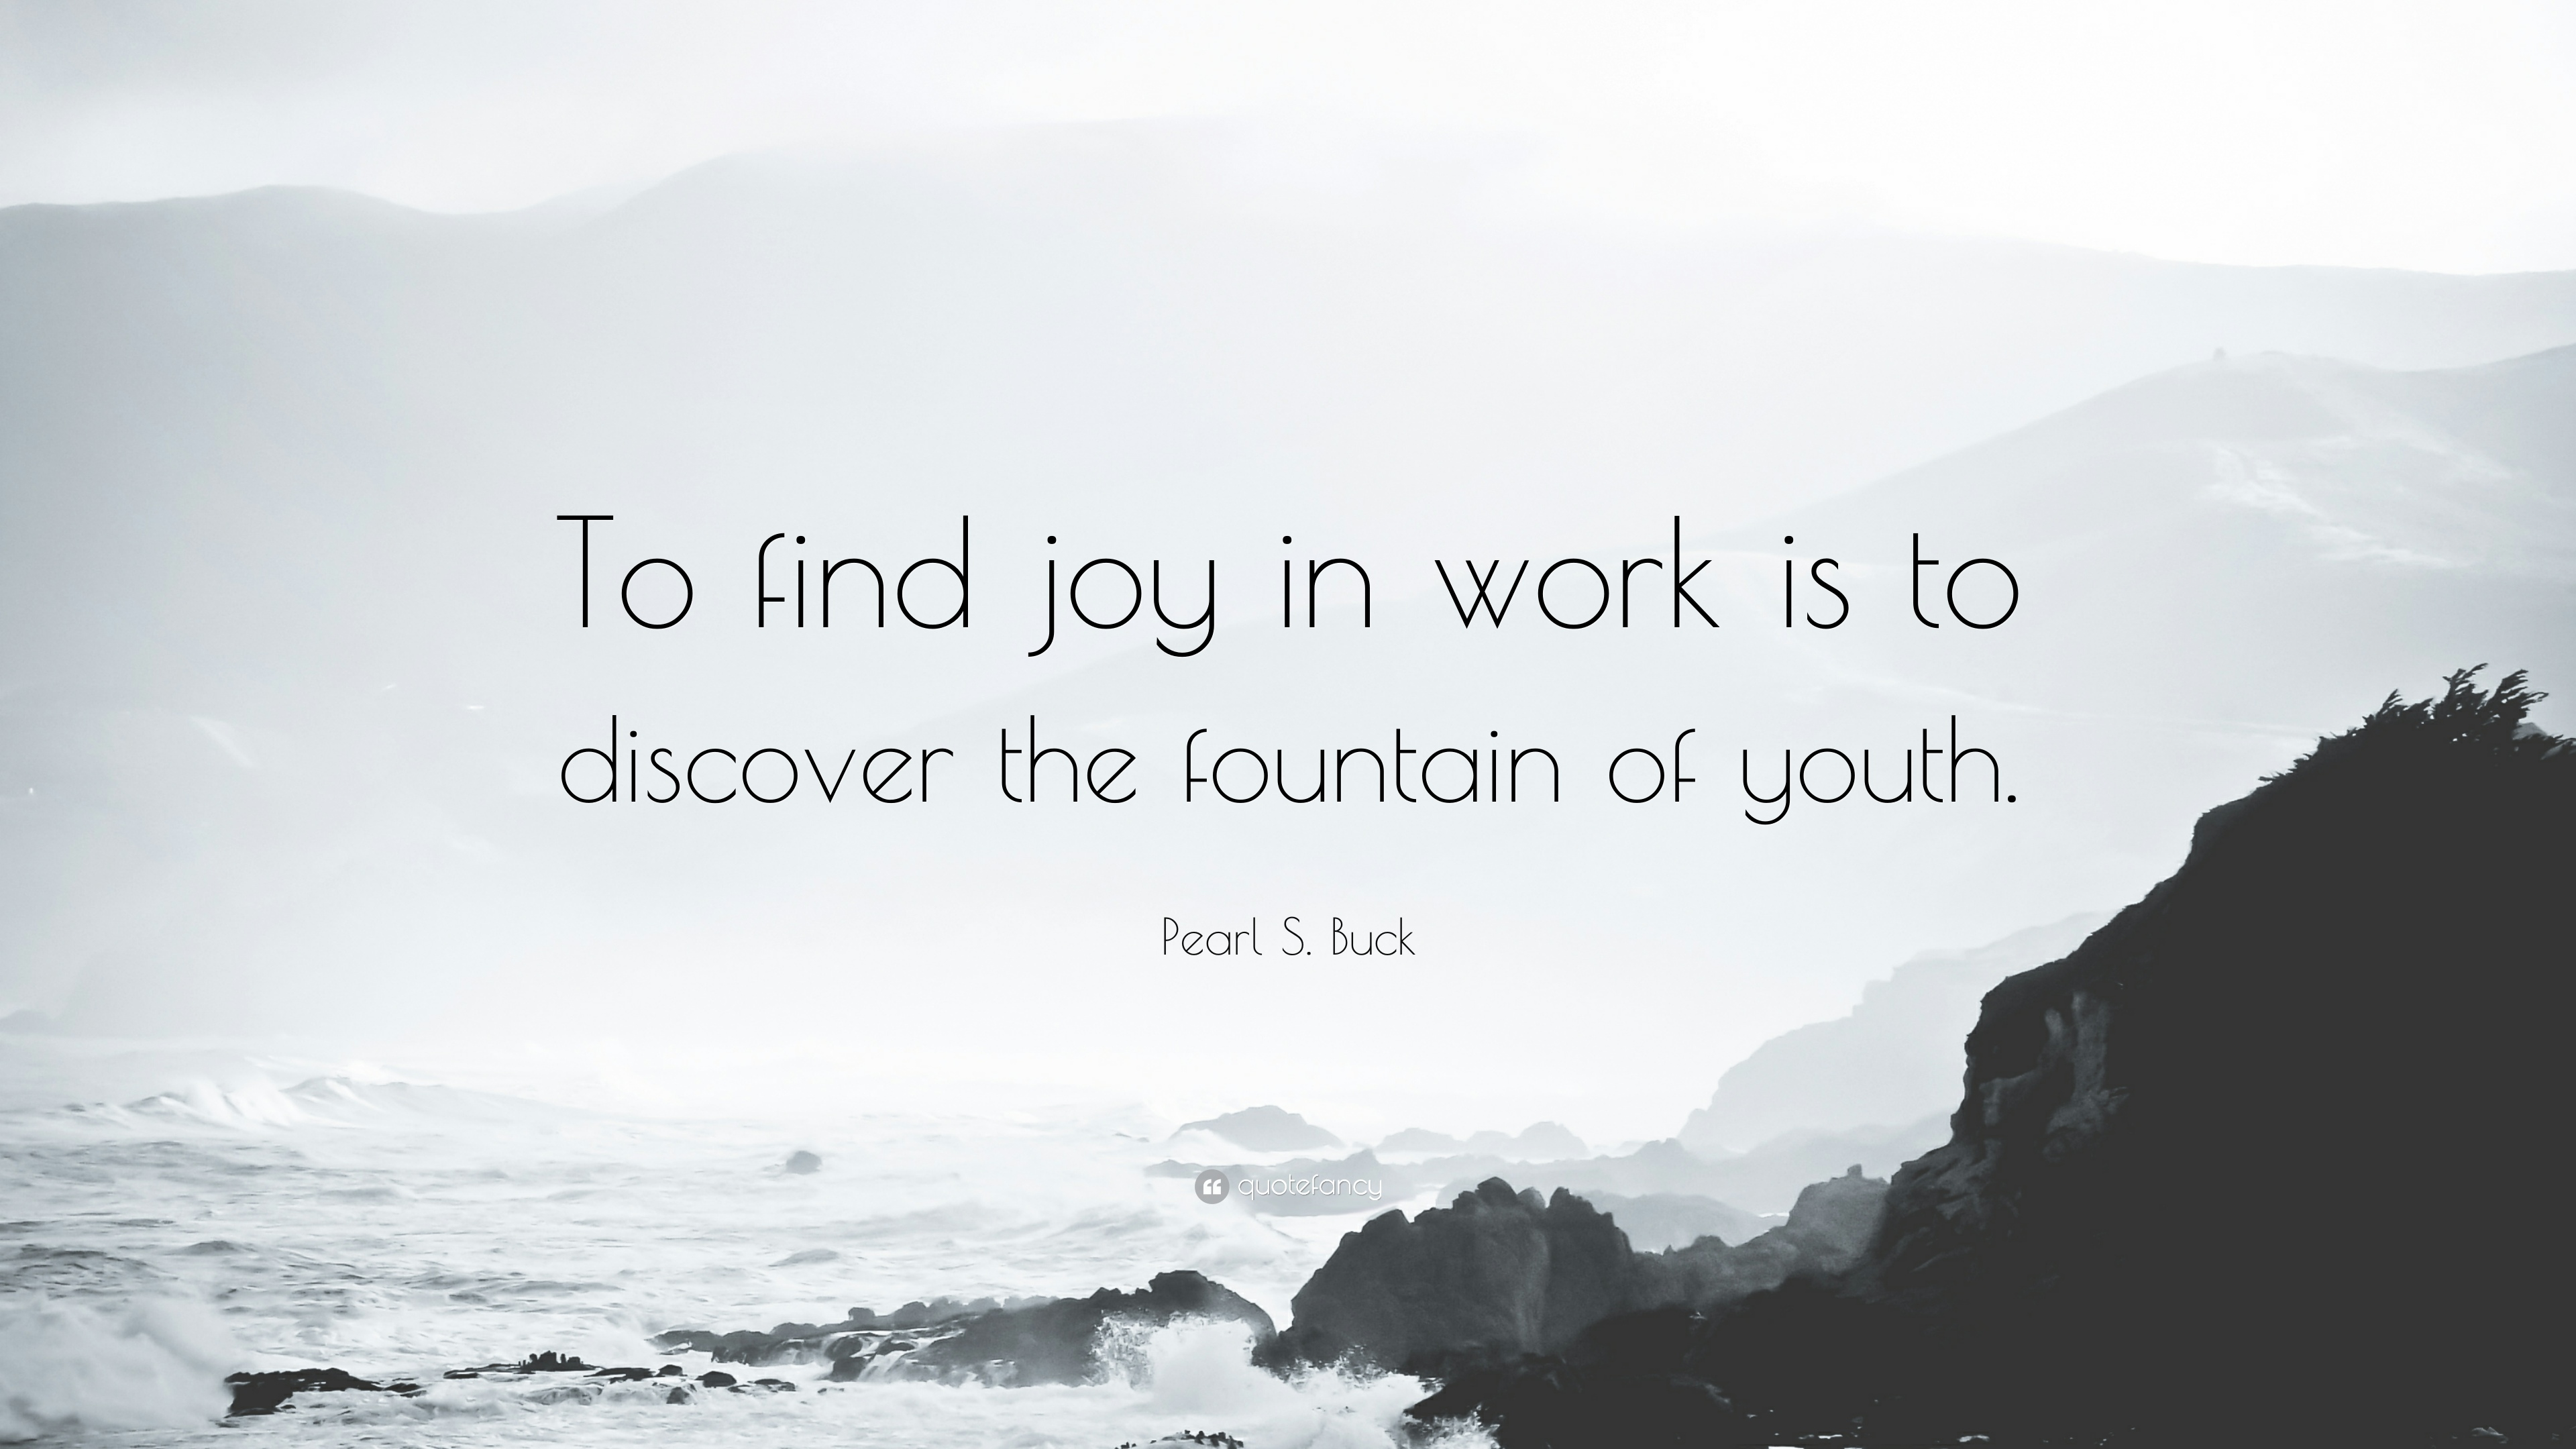 Pearl S Buck Quote To Find Joy In Work Is To Discover The